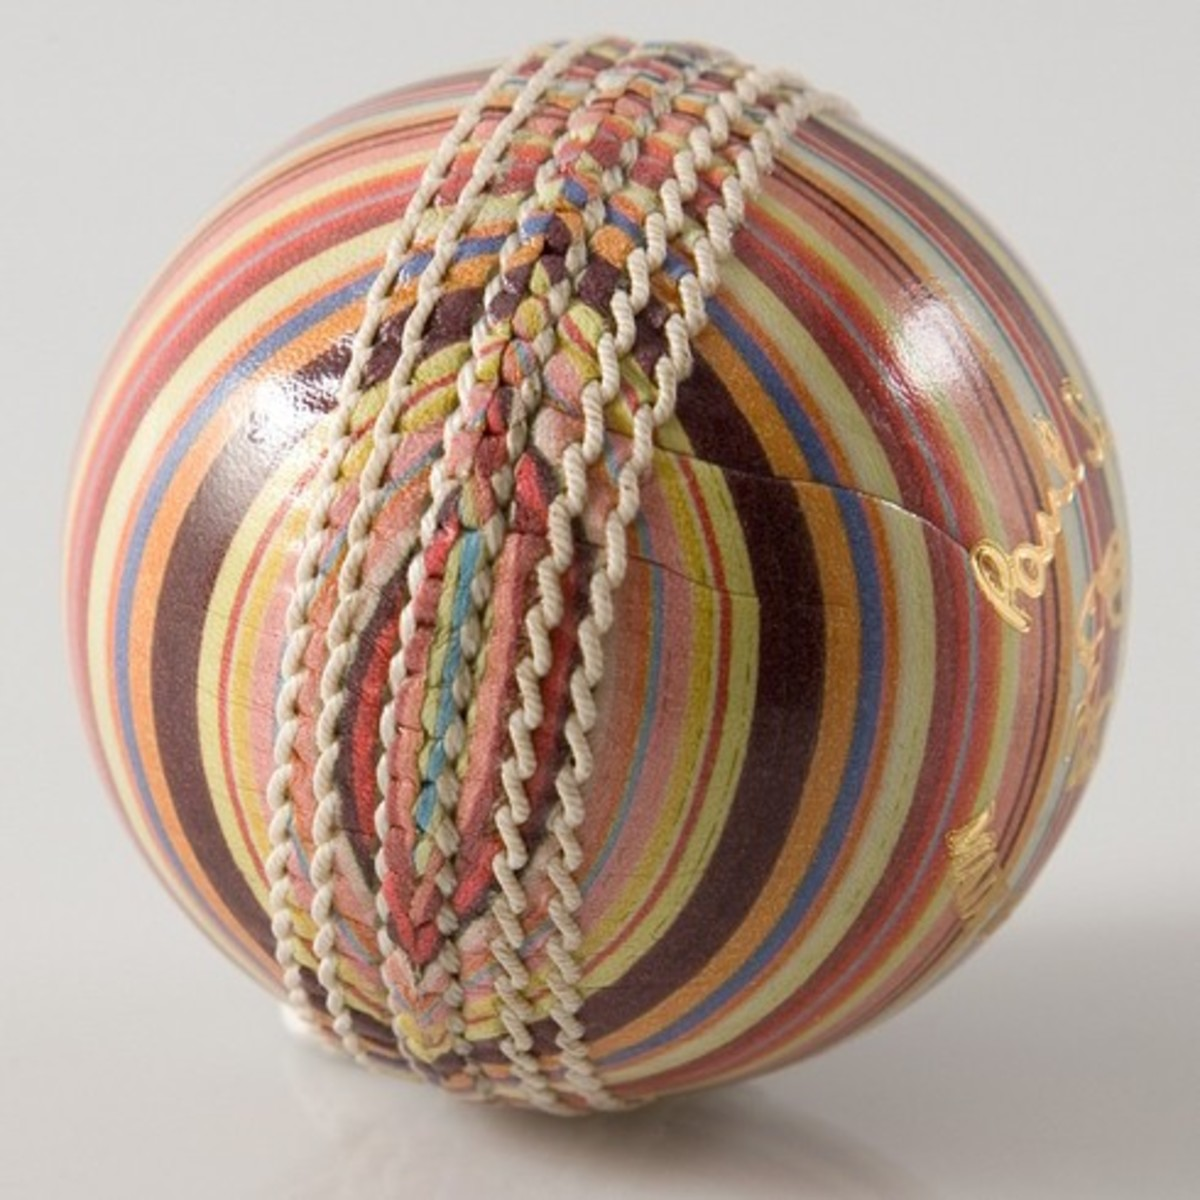 Paul Smith - Cricket Ball